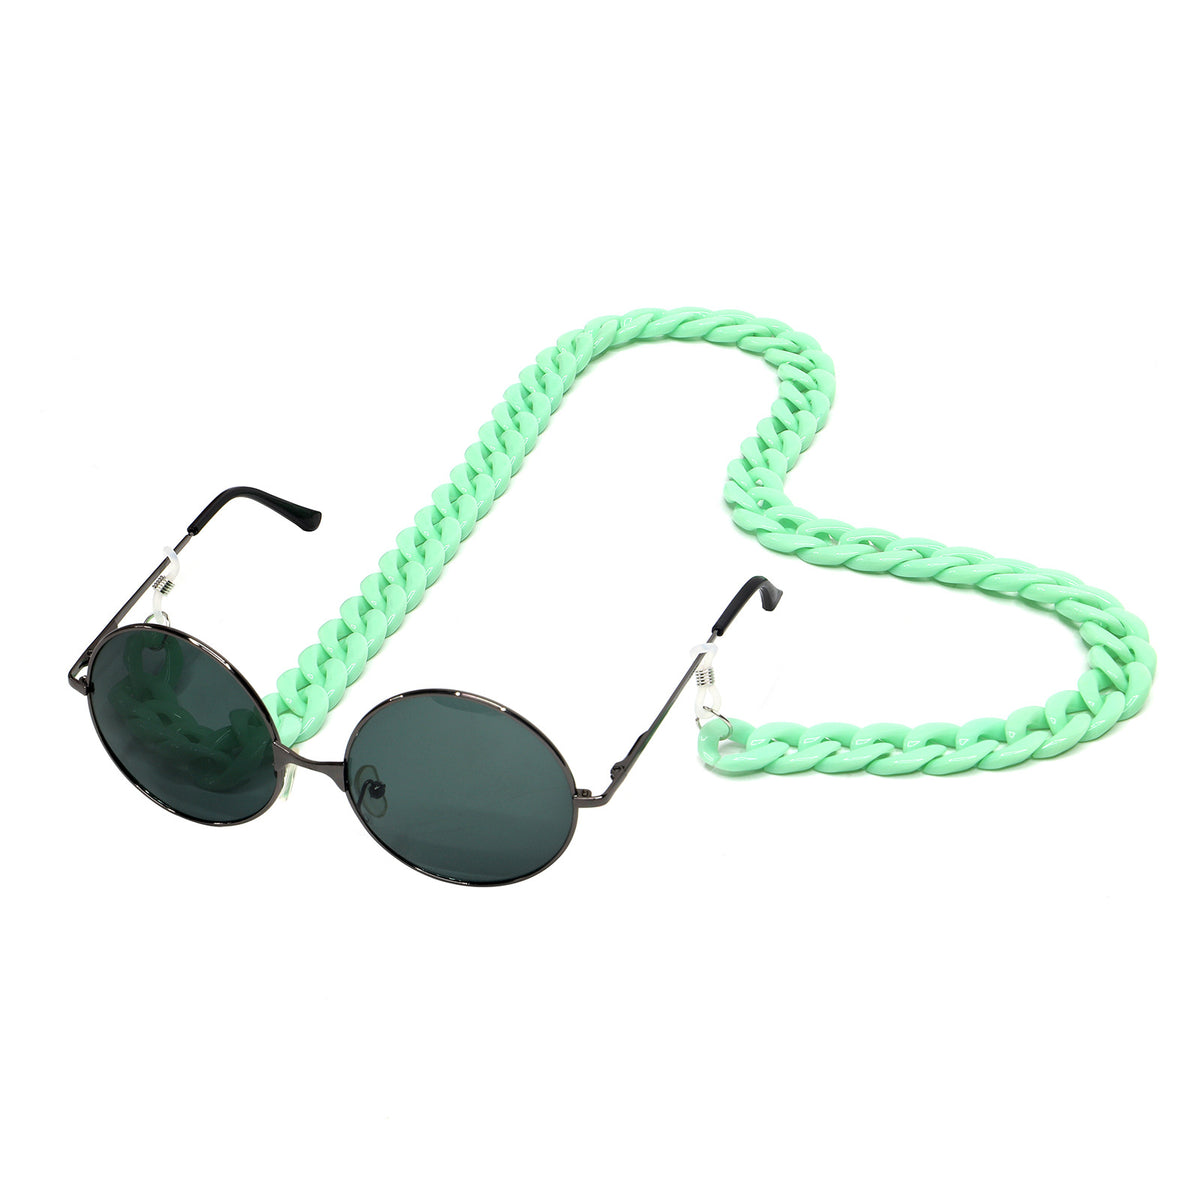 Mint Sunnies Chain